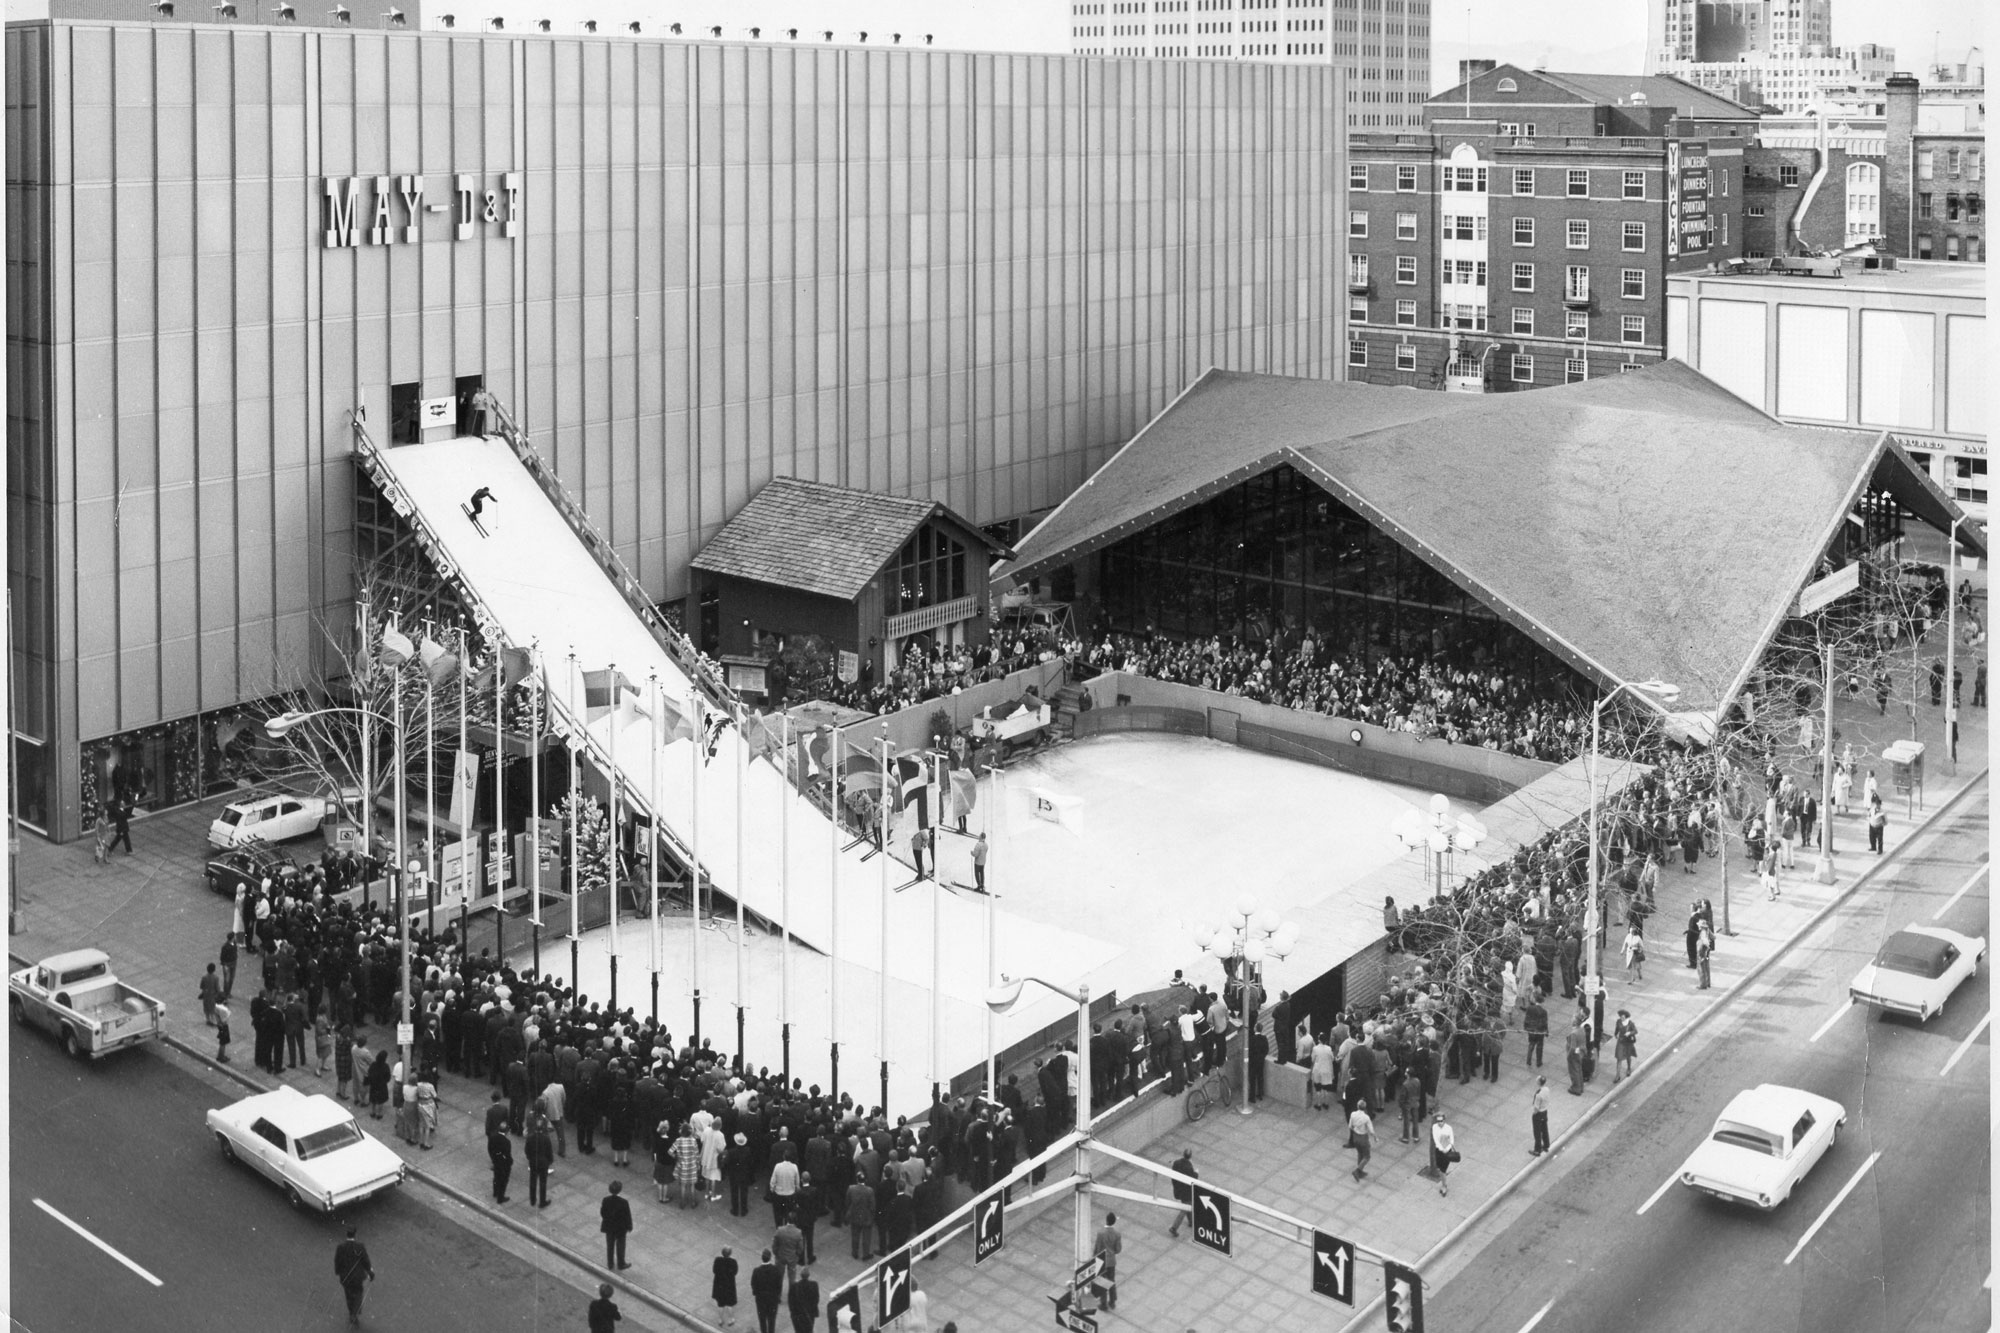 The ski run outside the May D&F department store in 1964.